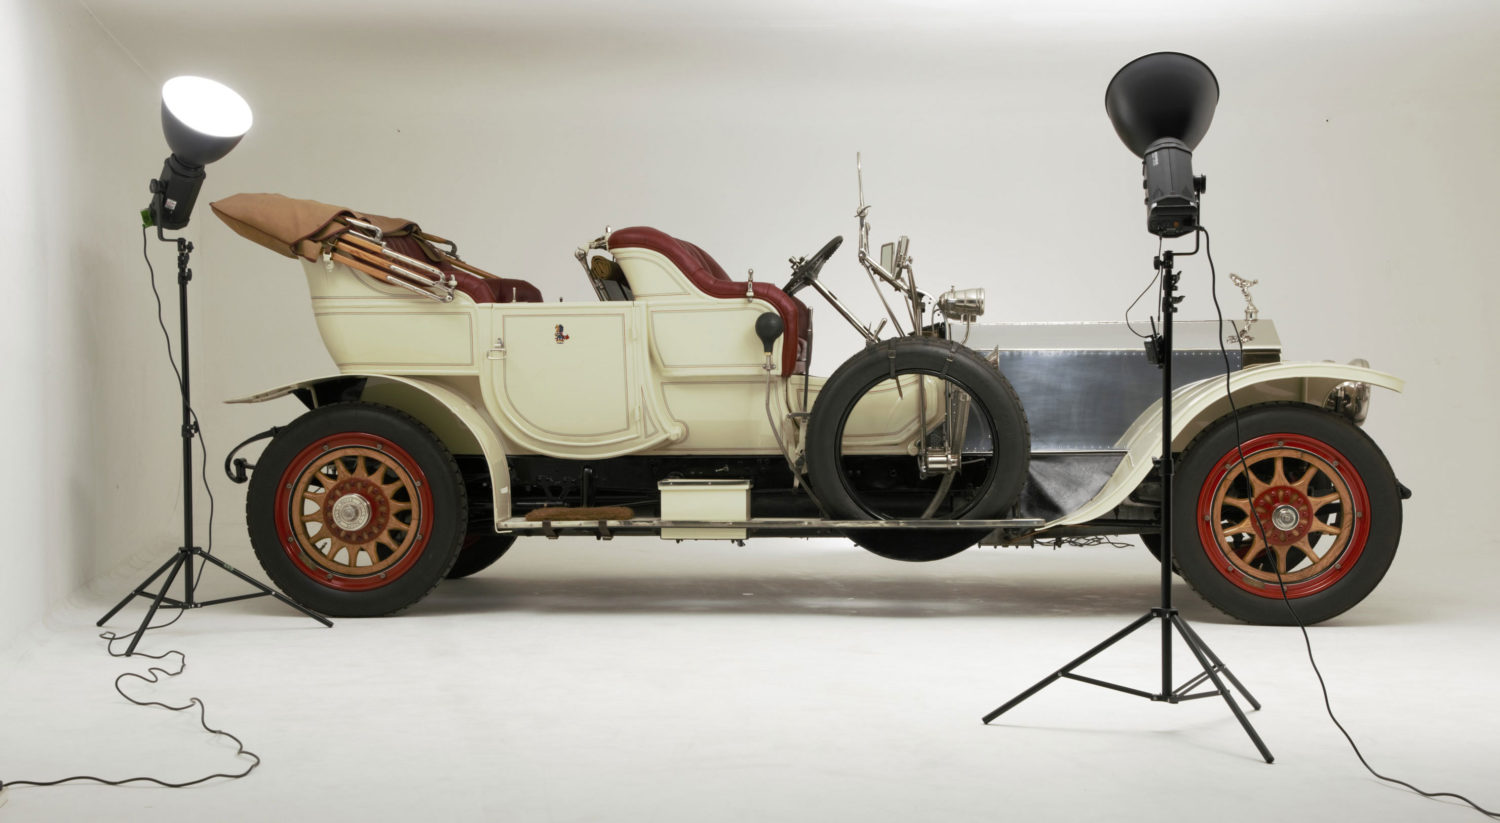 A Rolls-Royce Silver Ghost being photographed in a studio